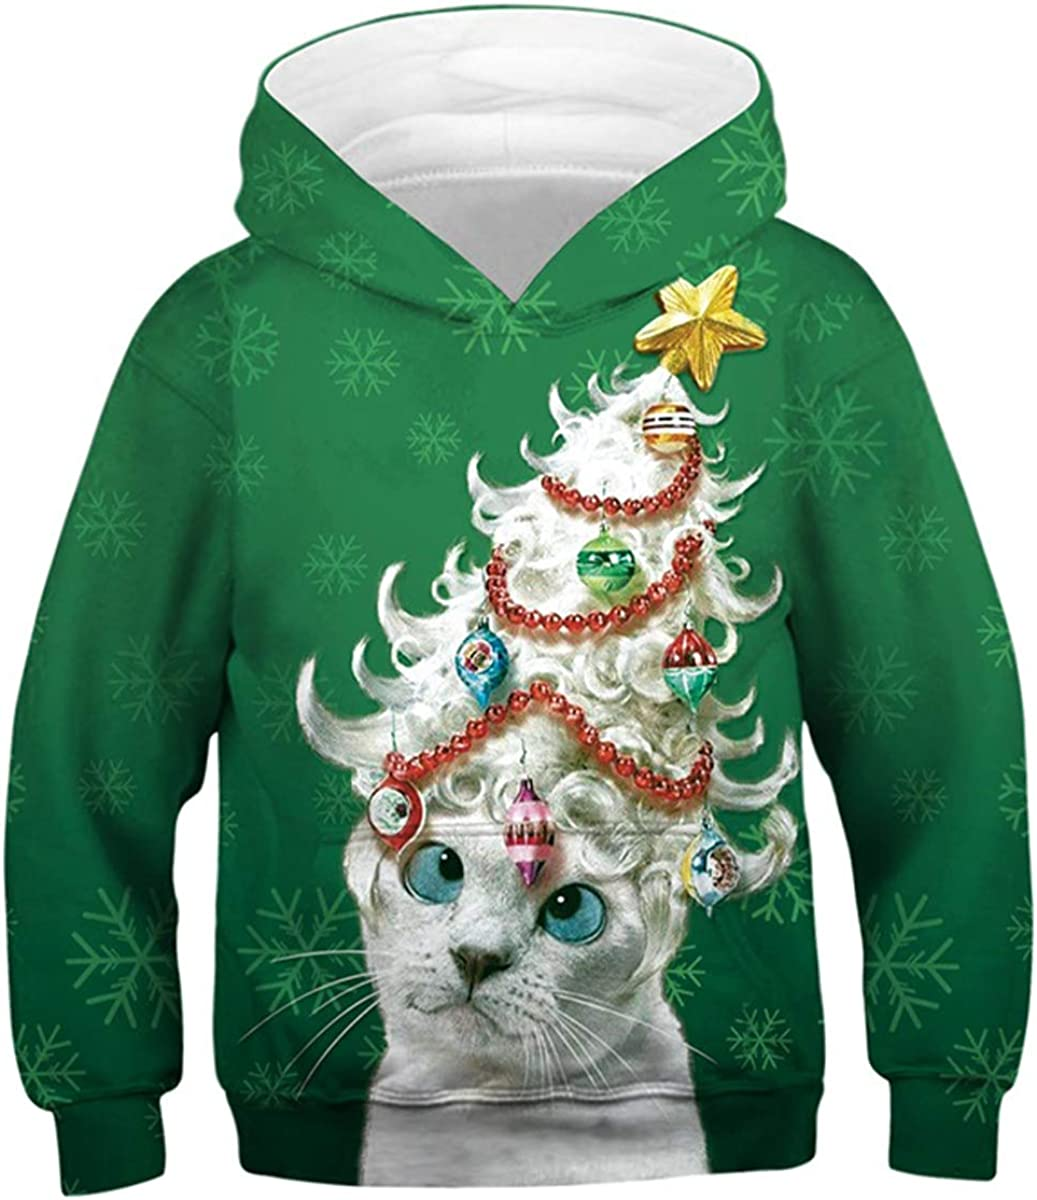 ALISISTER Unisex 3D Hoodies for Kids Funny Printed Pullover Hooded Sweatshirt Pockets Age 4-13